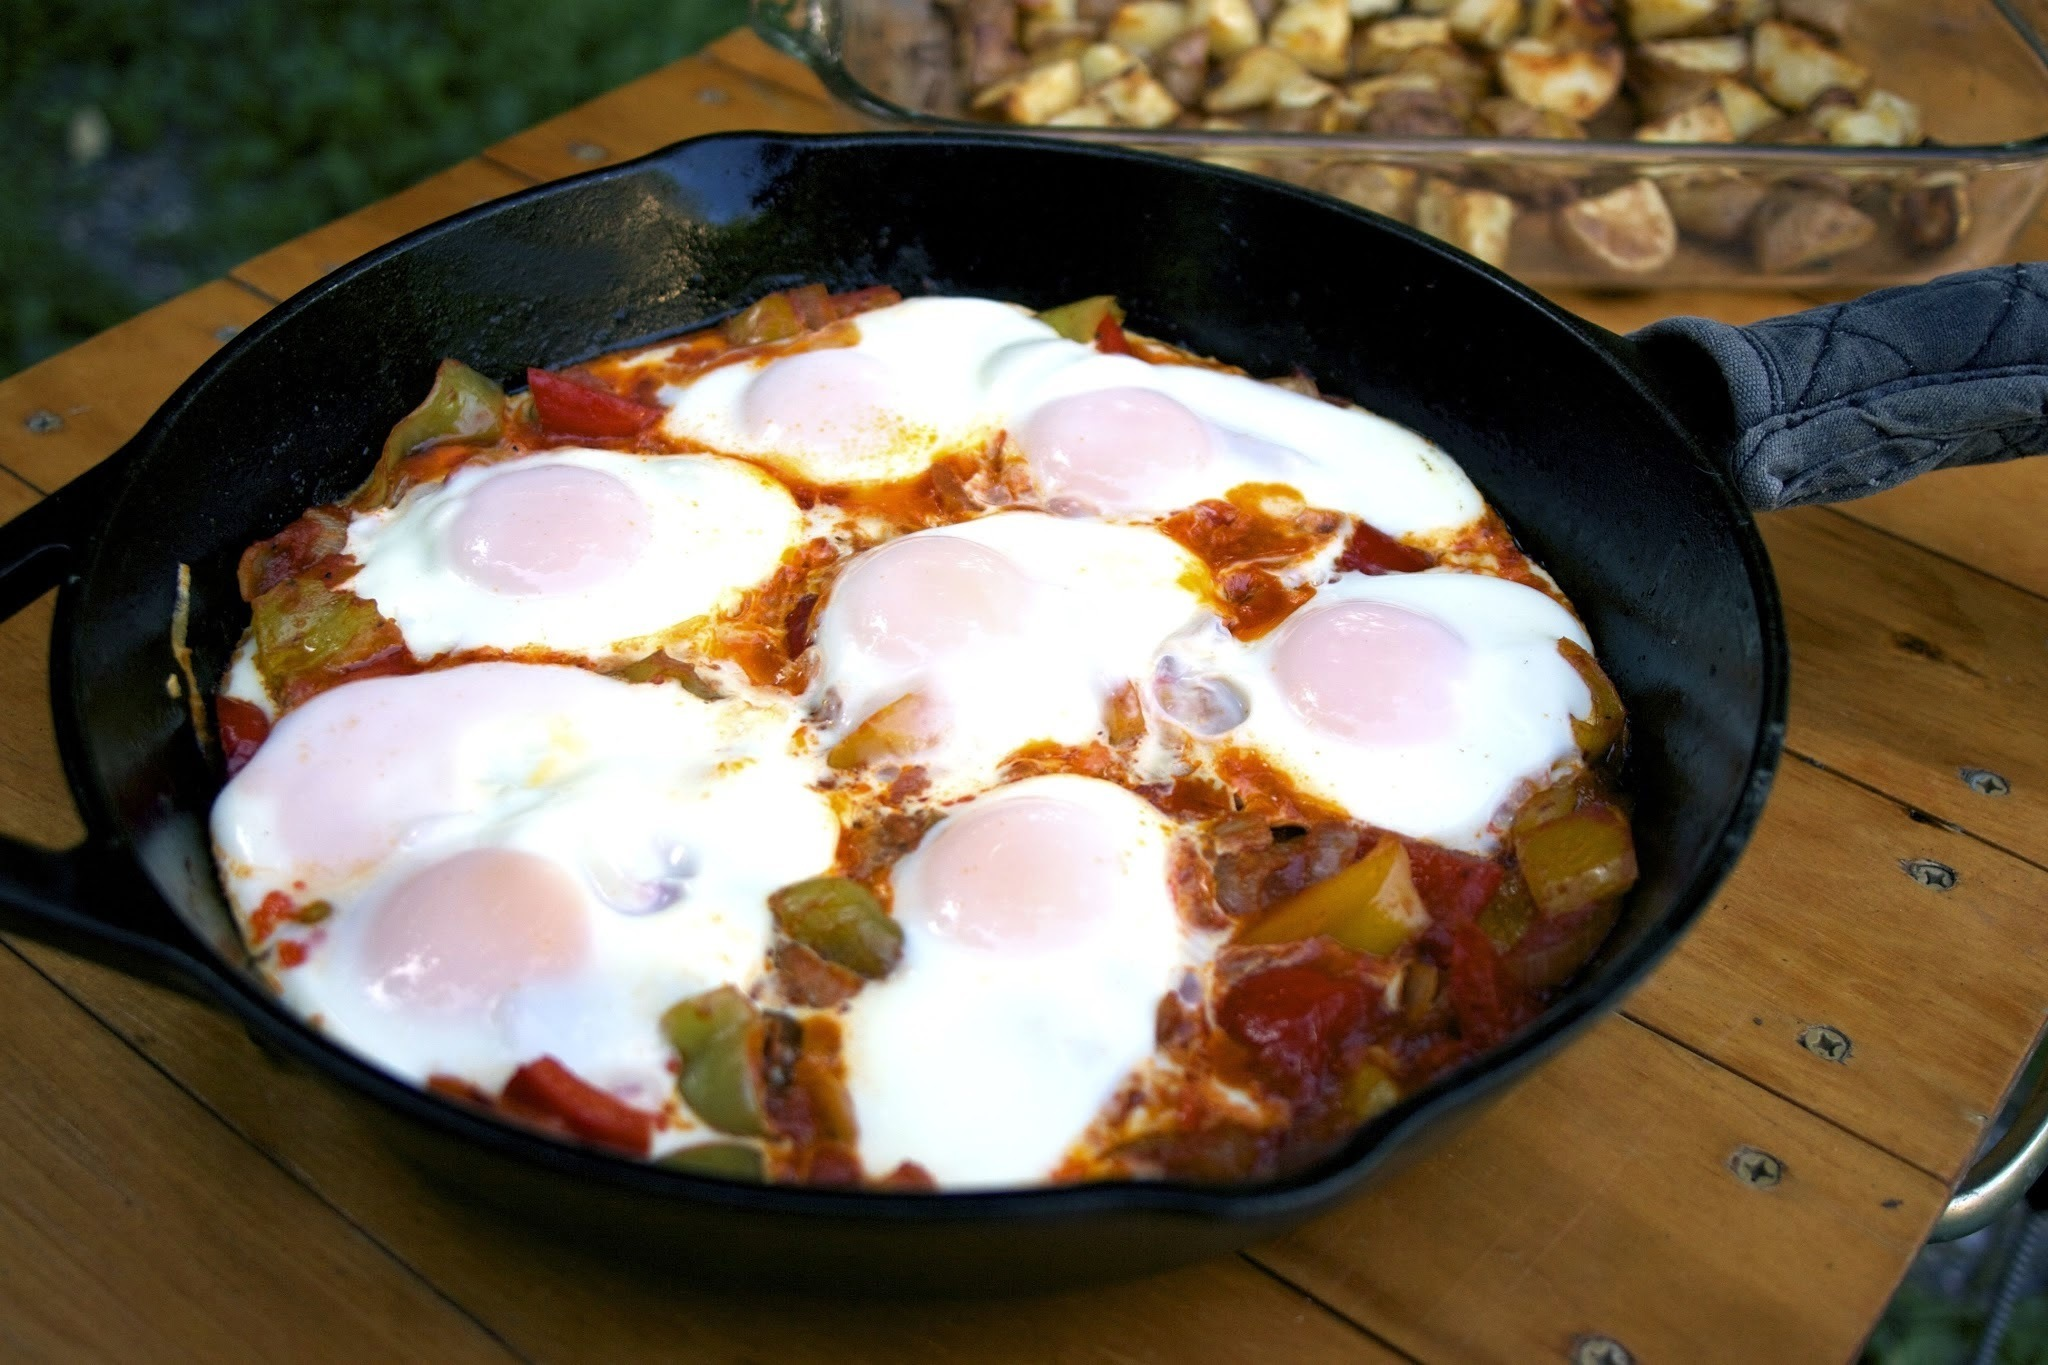 Peppers & Eggs Skillet Casserole: Sofrito con Huevo #Foodie Friday